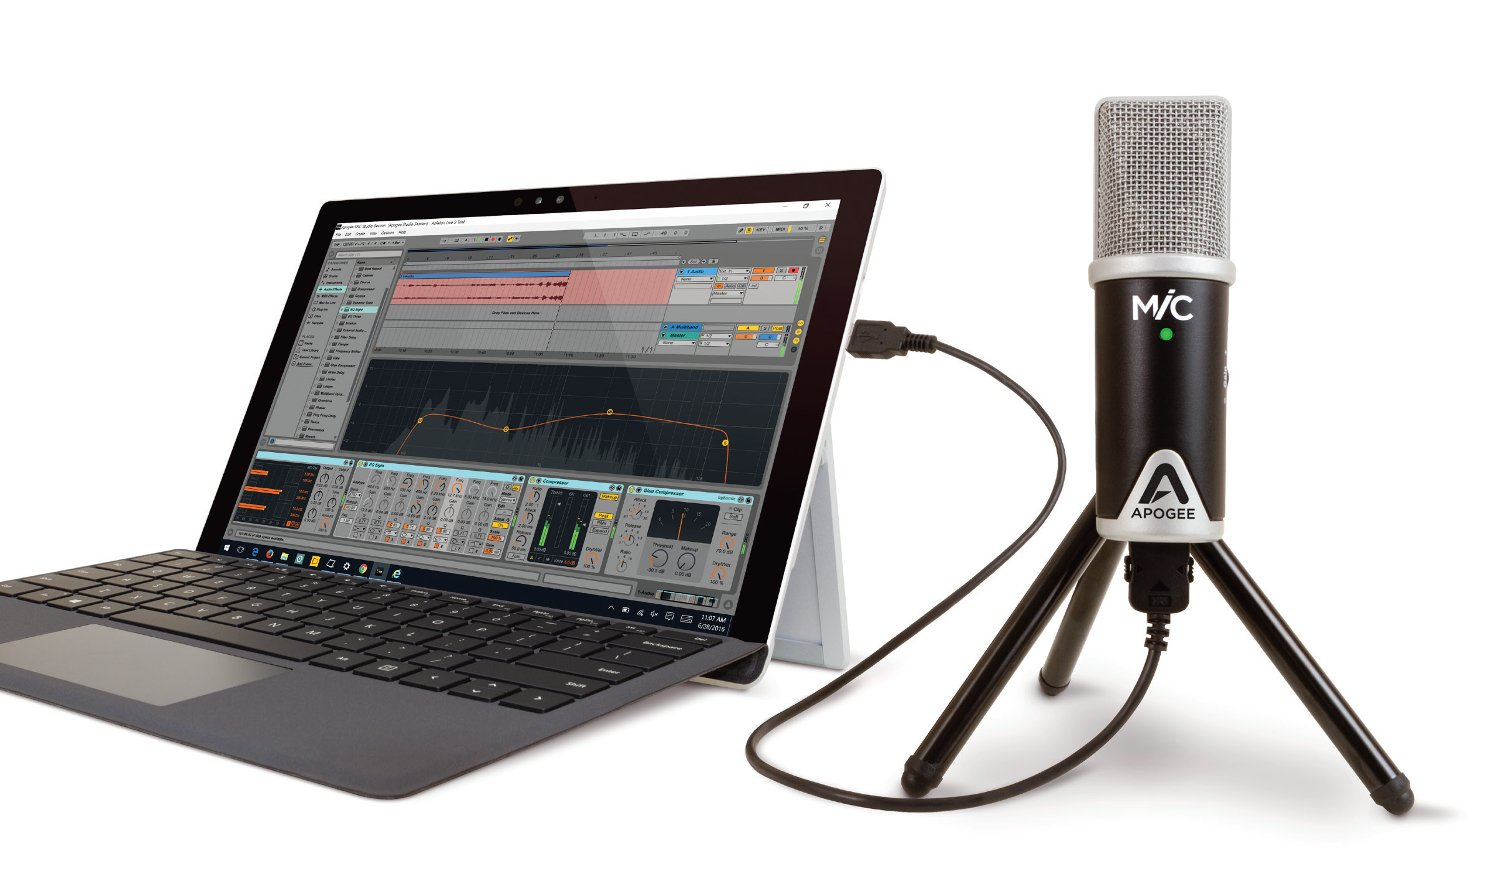 96kHz 24-bit Portable USB Microphone for Mac & Windows